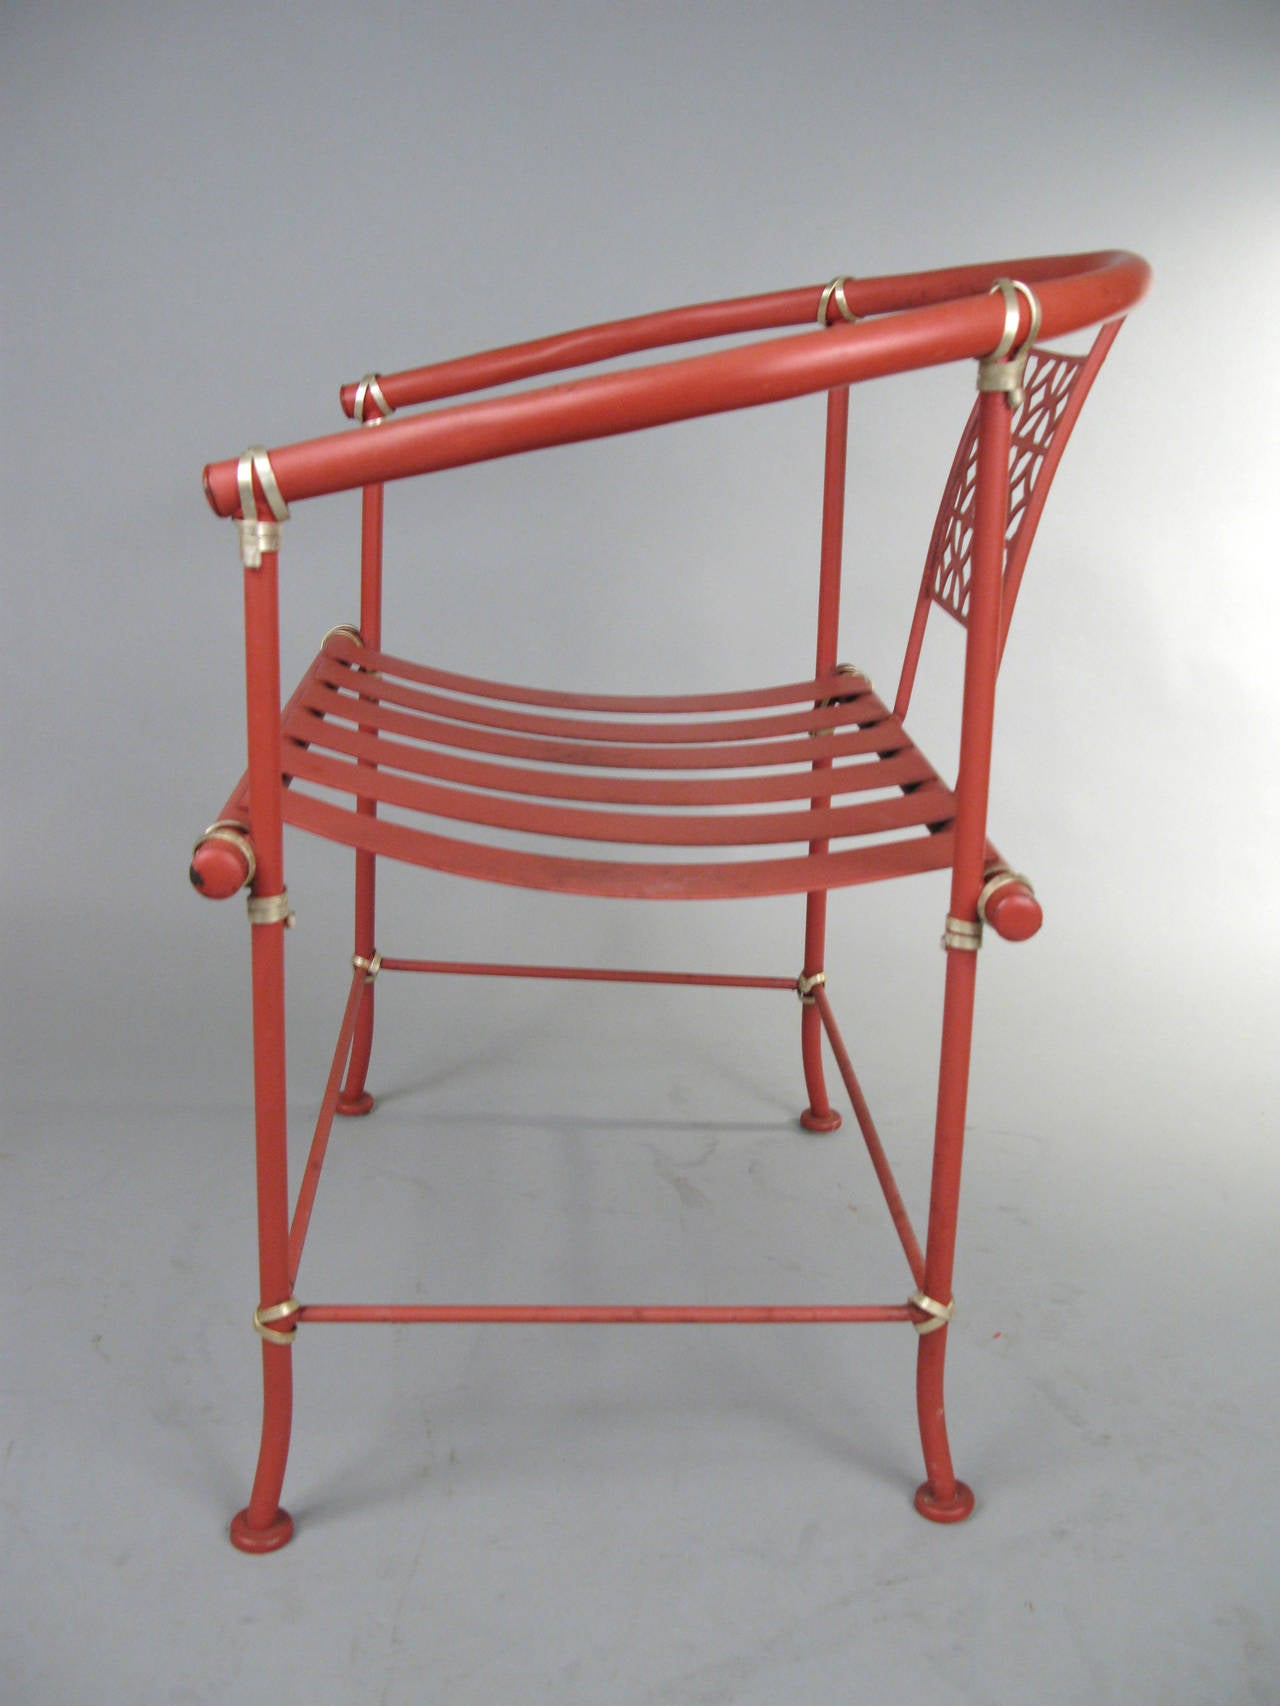 1960s Wrought Iron Garden Dining Set In Chinese Red At 1stdibs